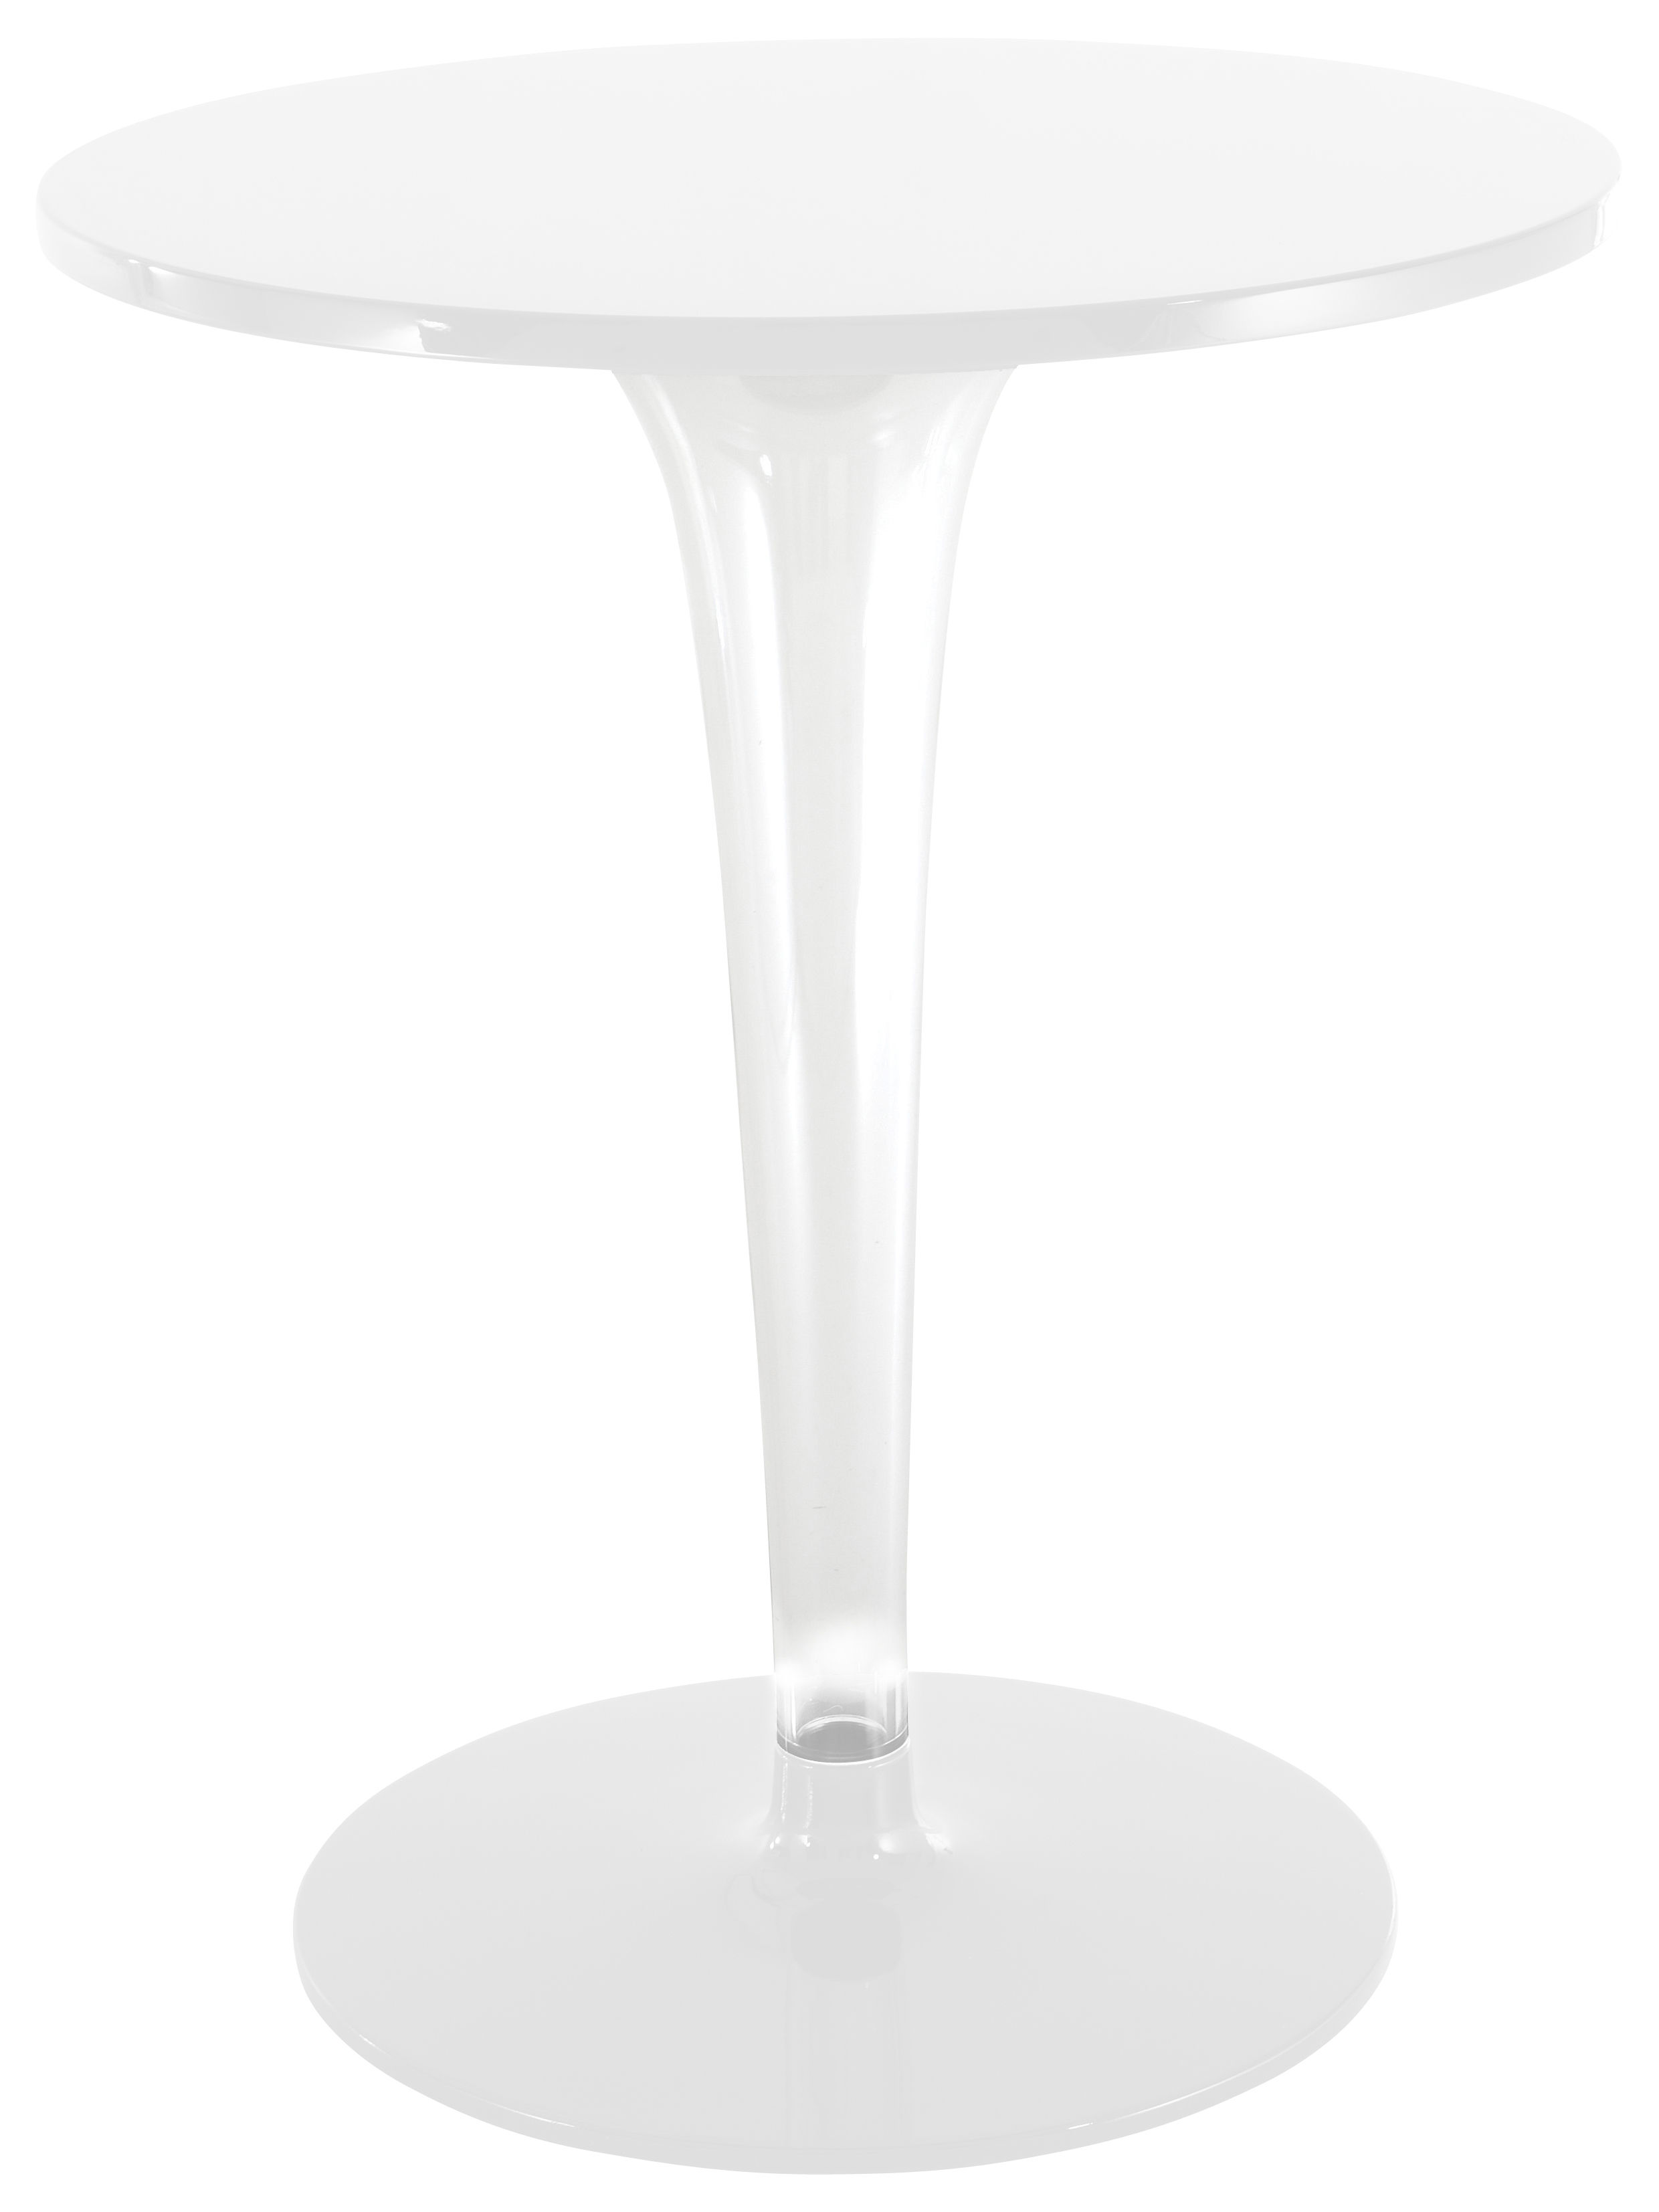 Outdoor - Garden Tables - TopTop - Dr. YES Round table - Round table top Ø 60 cm by Kartell - White / round leg & base - Melamine, PMMA, Varnished aluminium